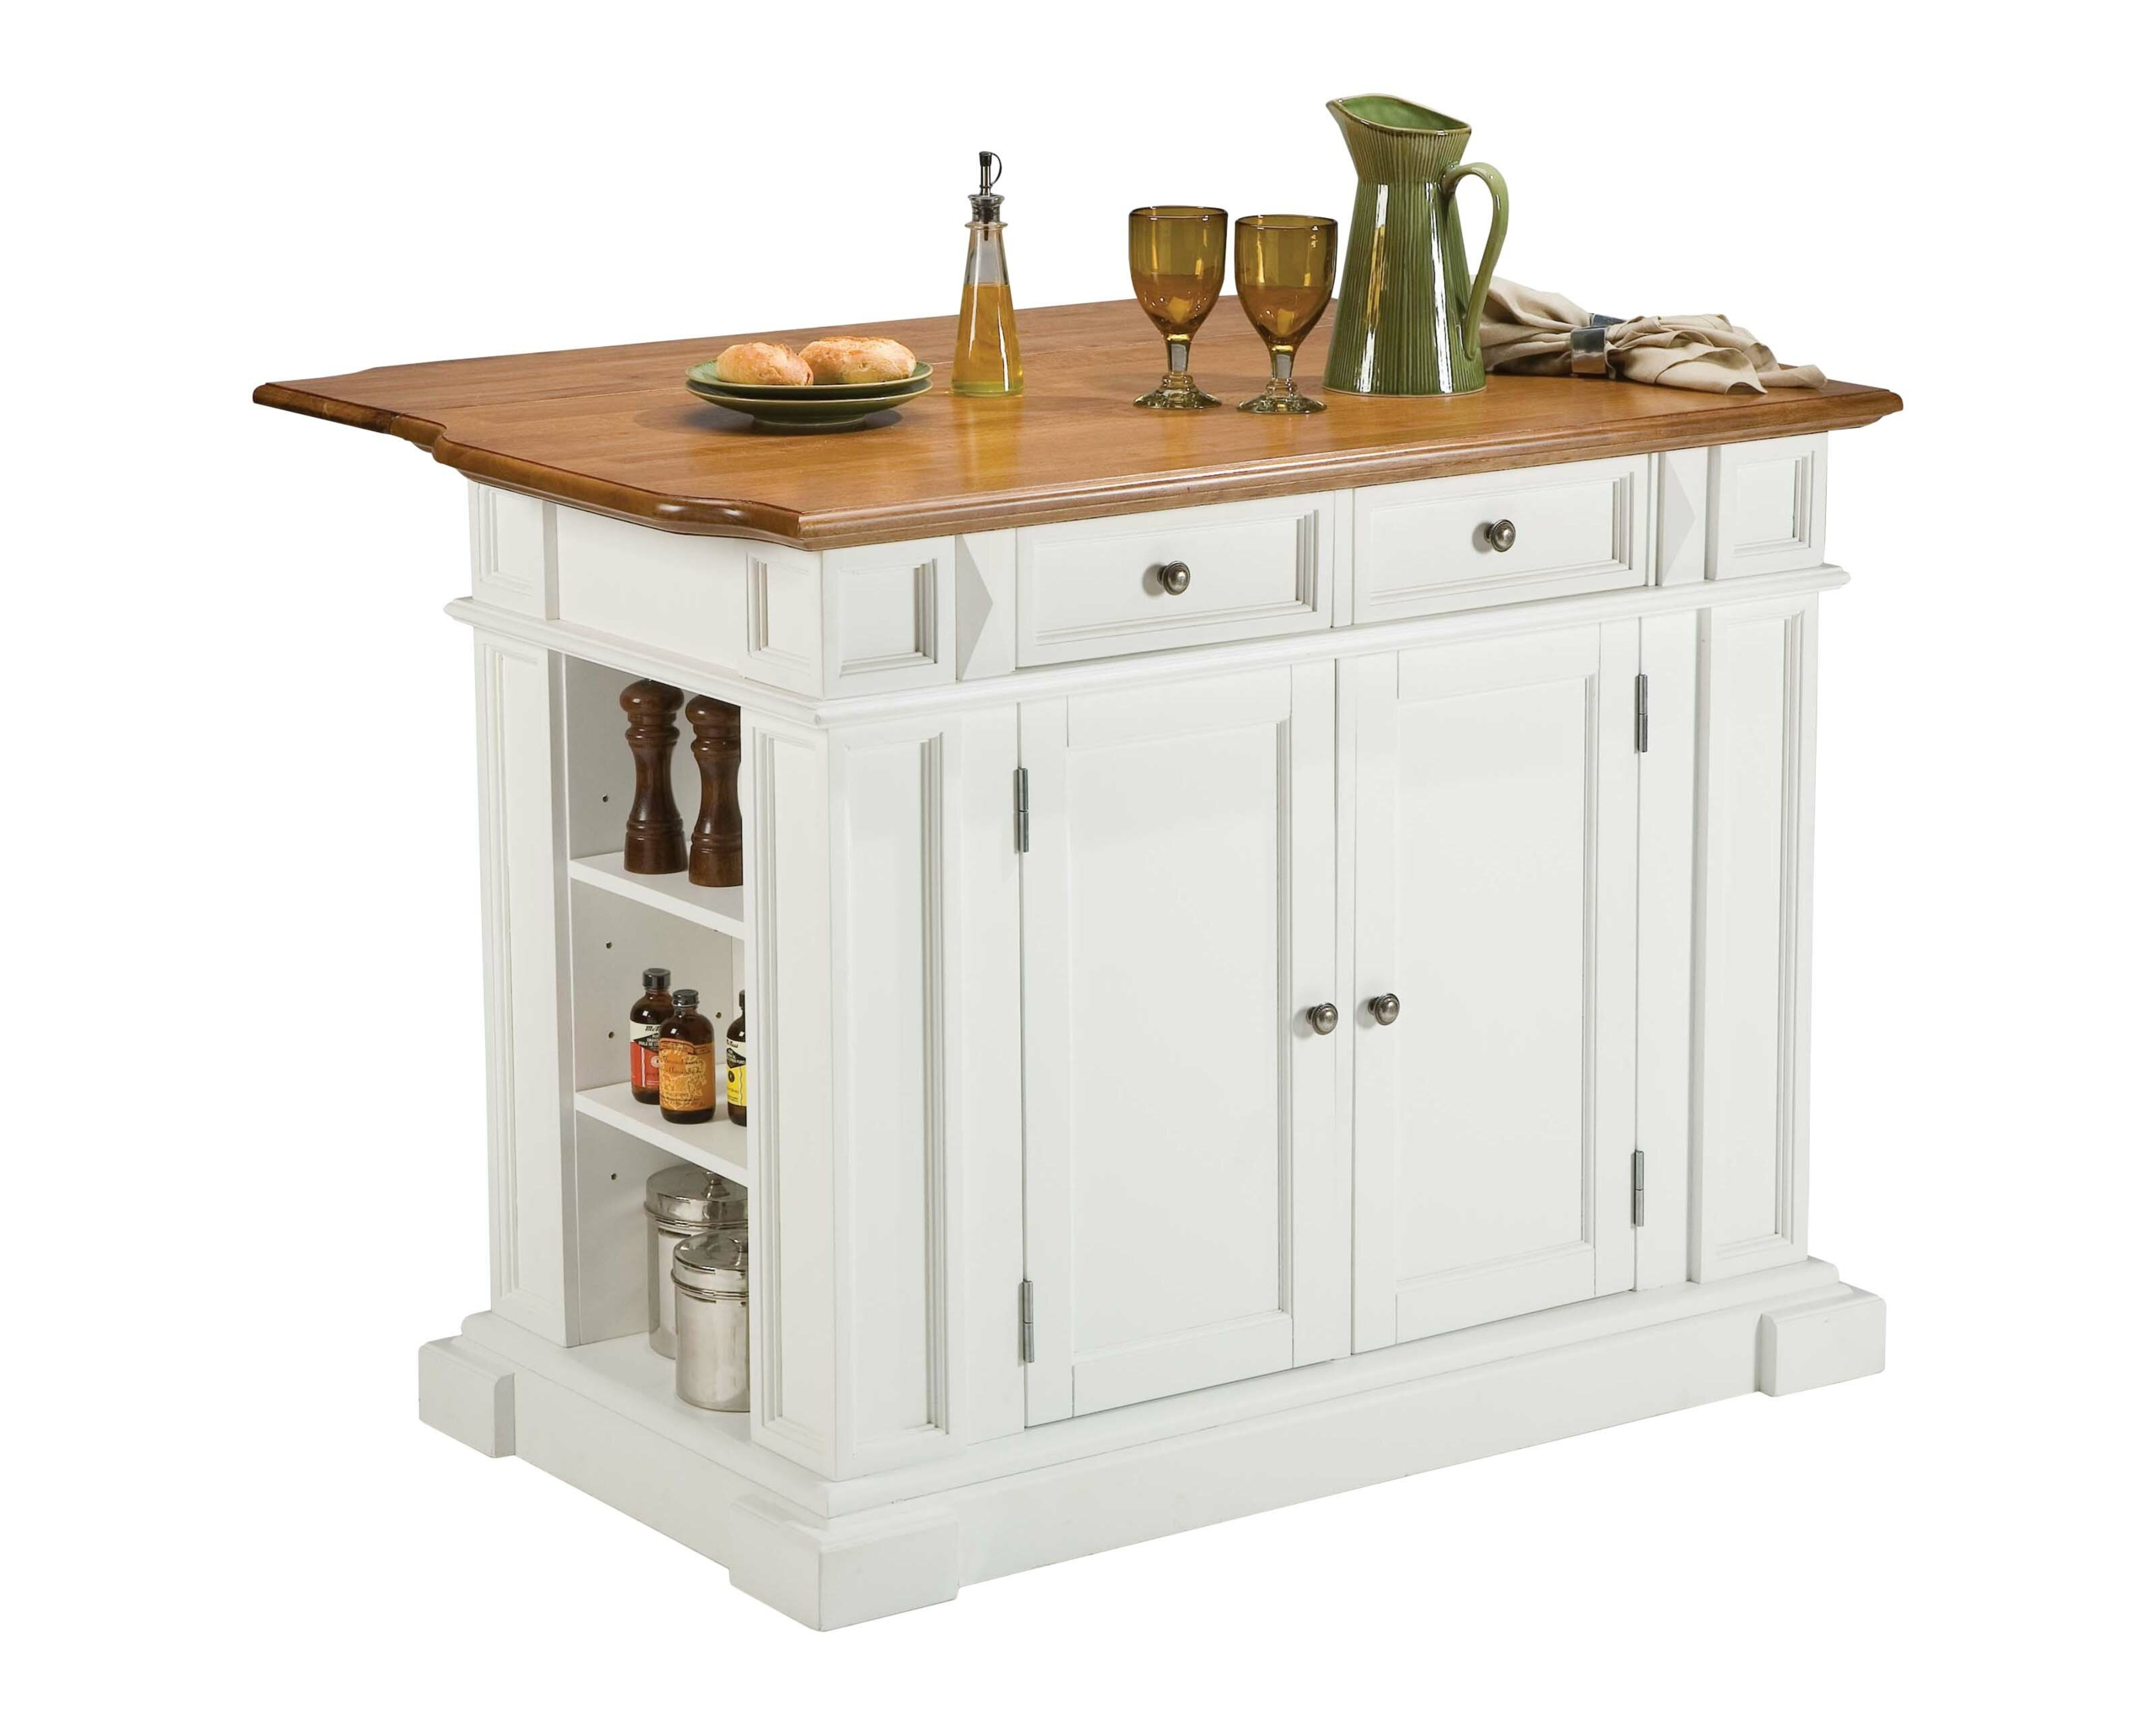 Ordinaire The Functional Kitchen Island Equipped With Cabinets, Drawers And Shelves  For Storage. Sturdy Construction Is Made Of Wood With Small Metal  Components.